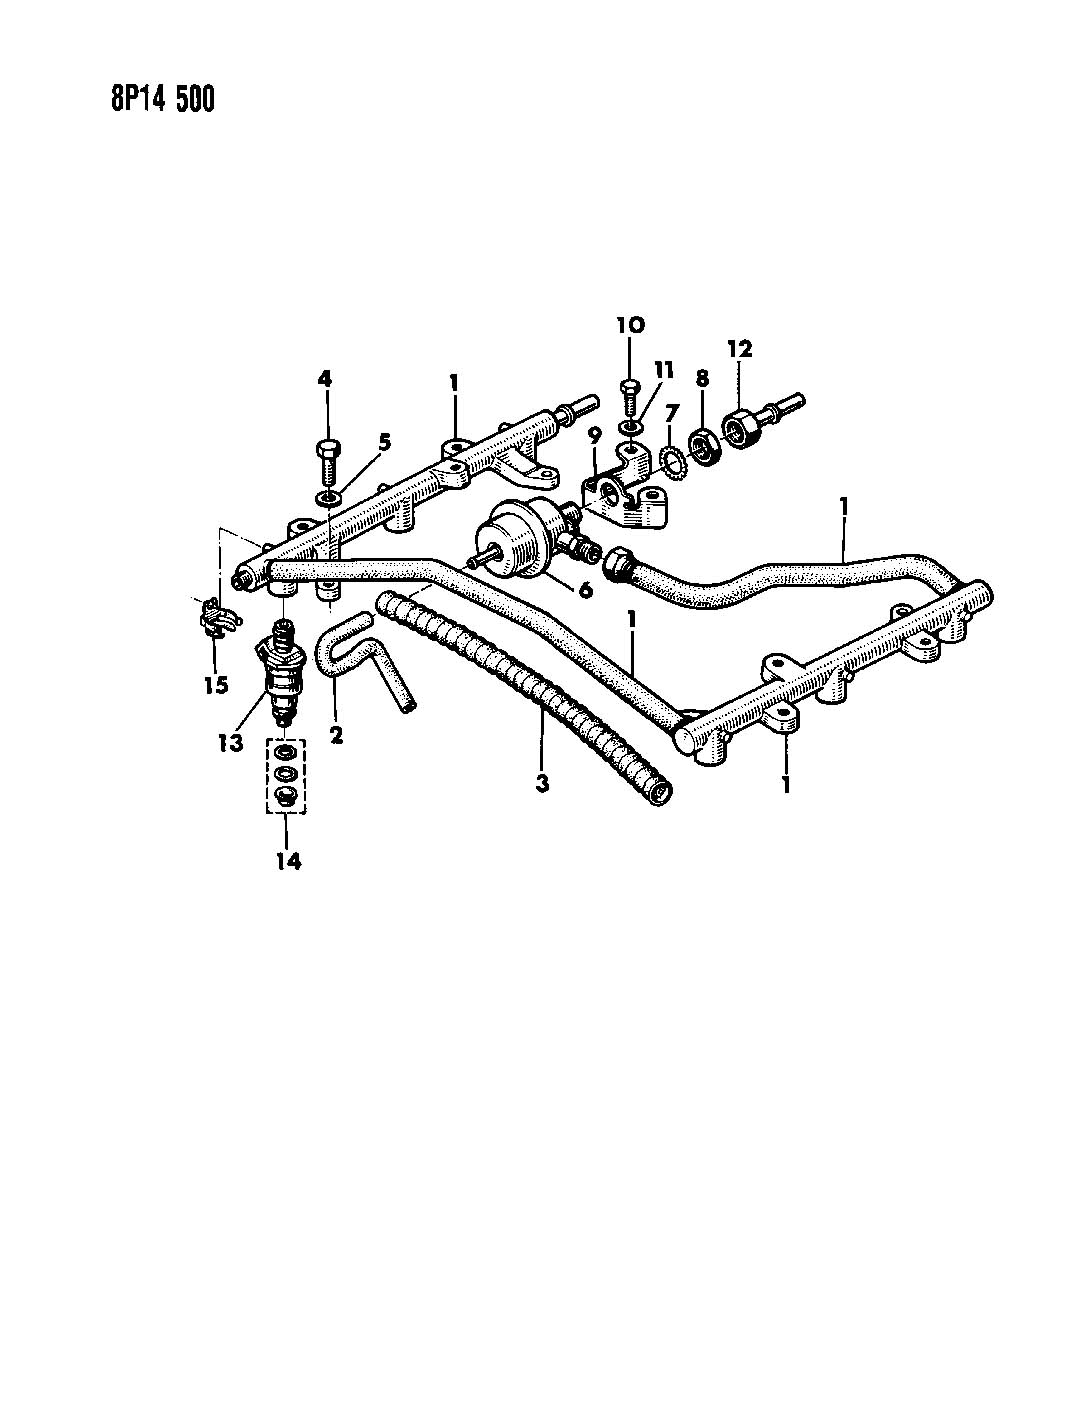 FUEL RAIL AND RELATED PARTS 3.0L ENGINE